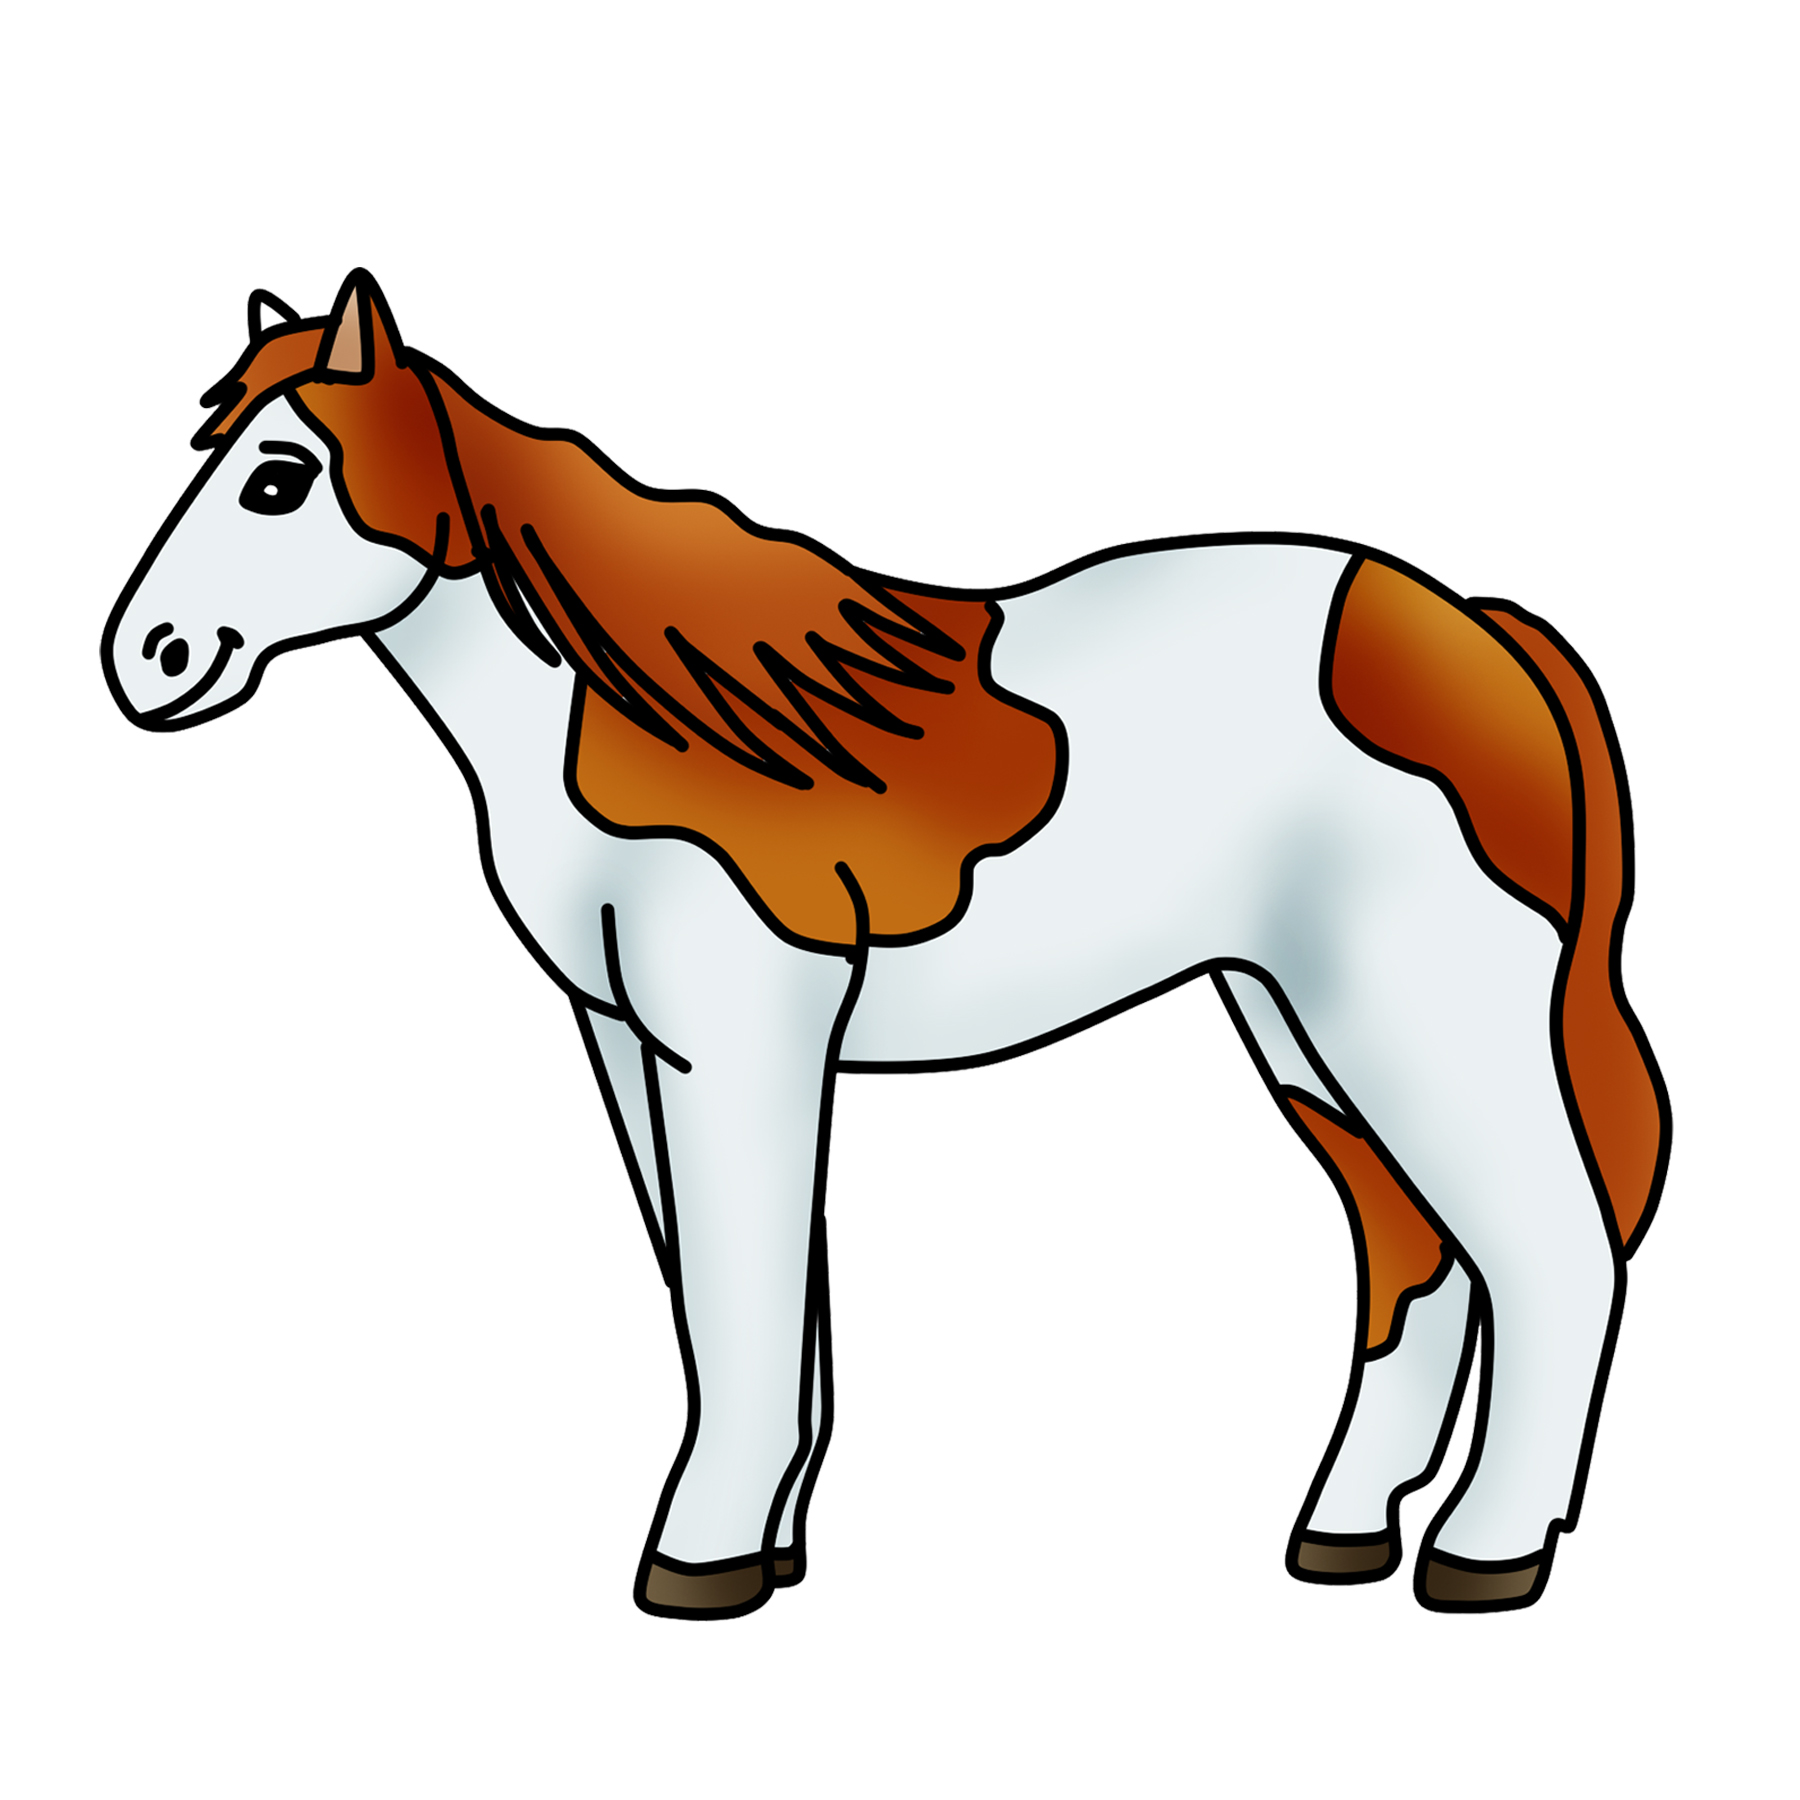 1800x1800 Spotted Horse Clipart Pony Graphic